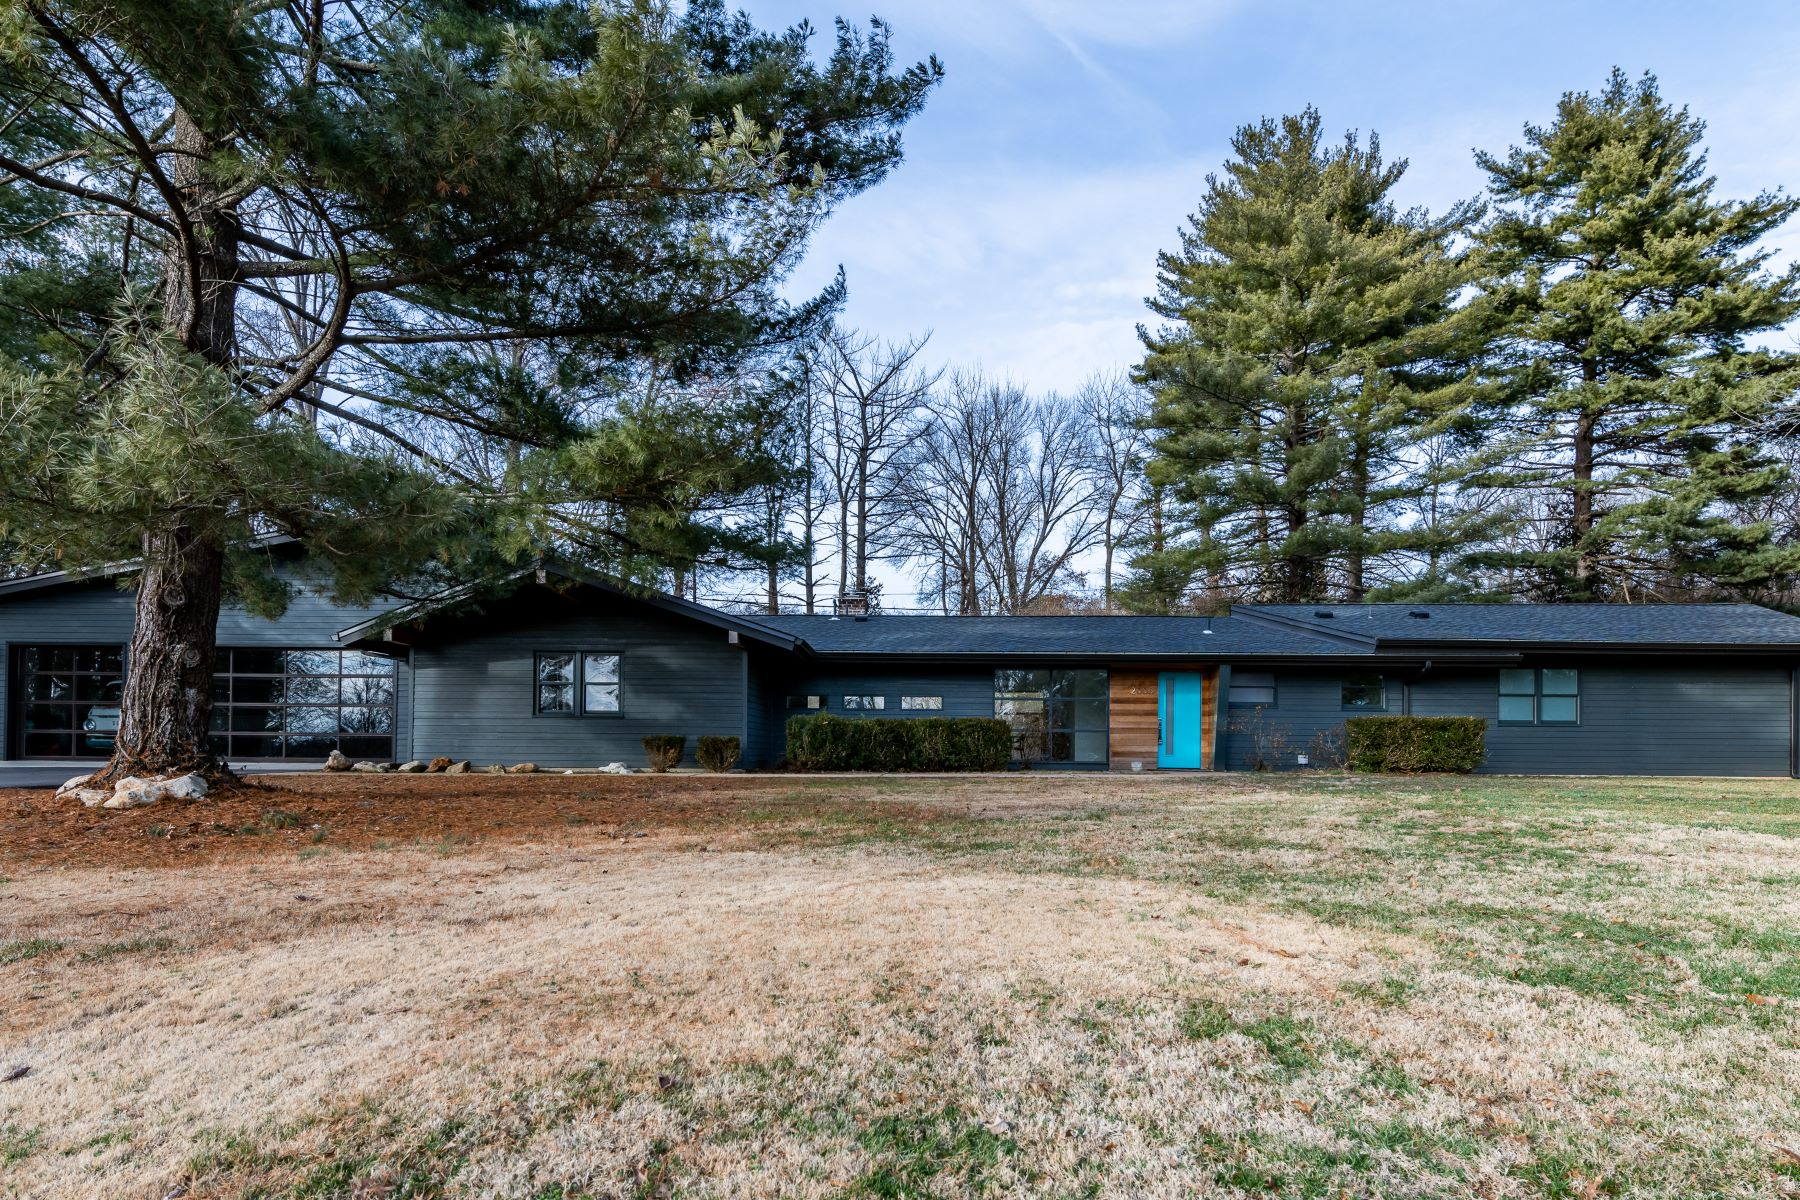 Single Family Homes for Sale at Beautifully remodeled Mid-Century home in Kirkwood 2005 Rayner Road Kirkwood, Missouri 63122 United States